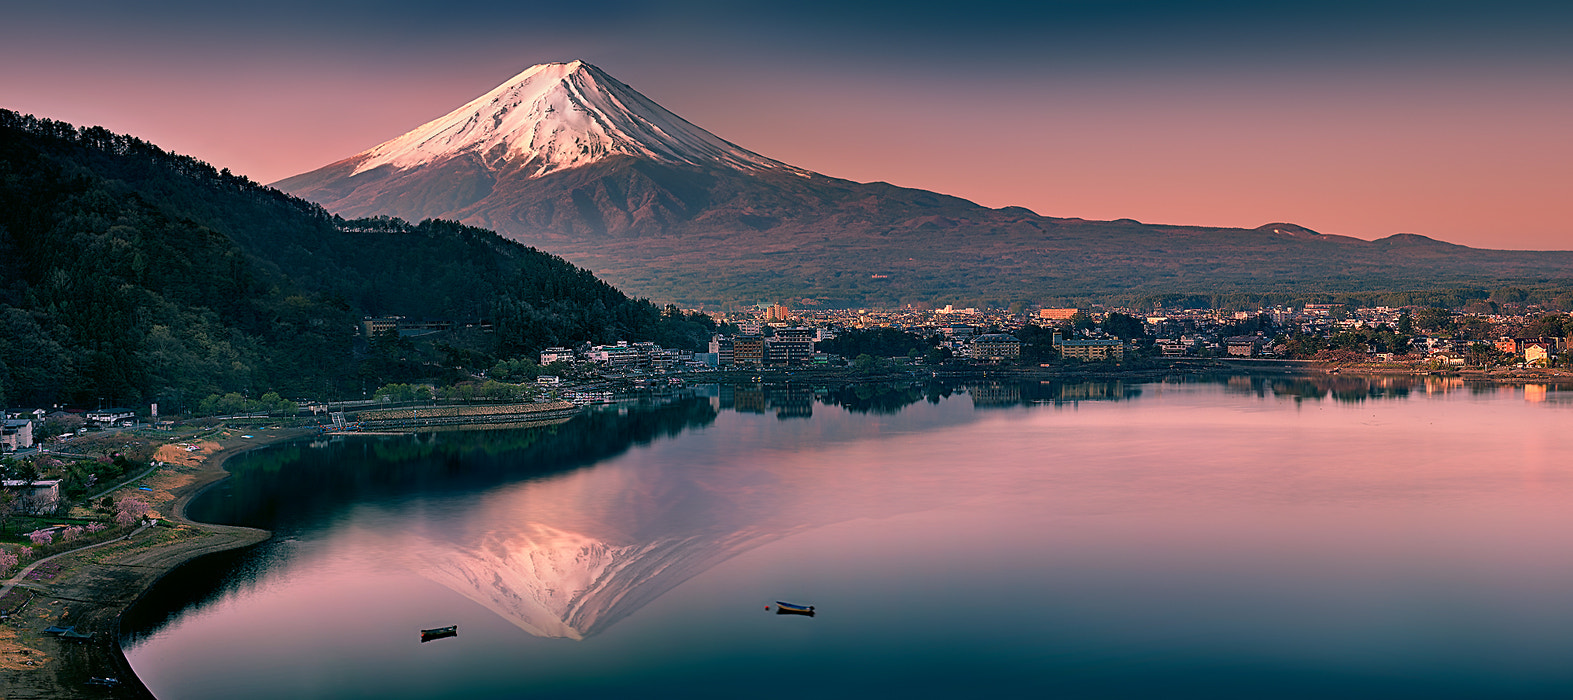 Photograph Kawaguchiko Panoramic View by Natasha Pnini on 500px